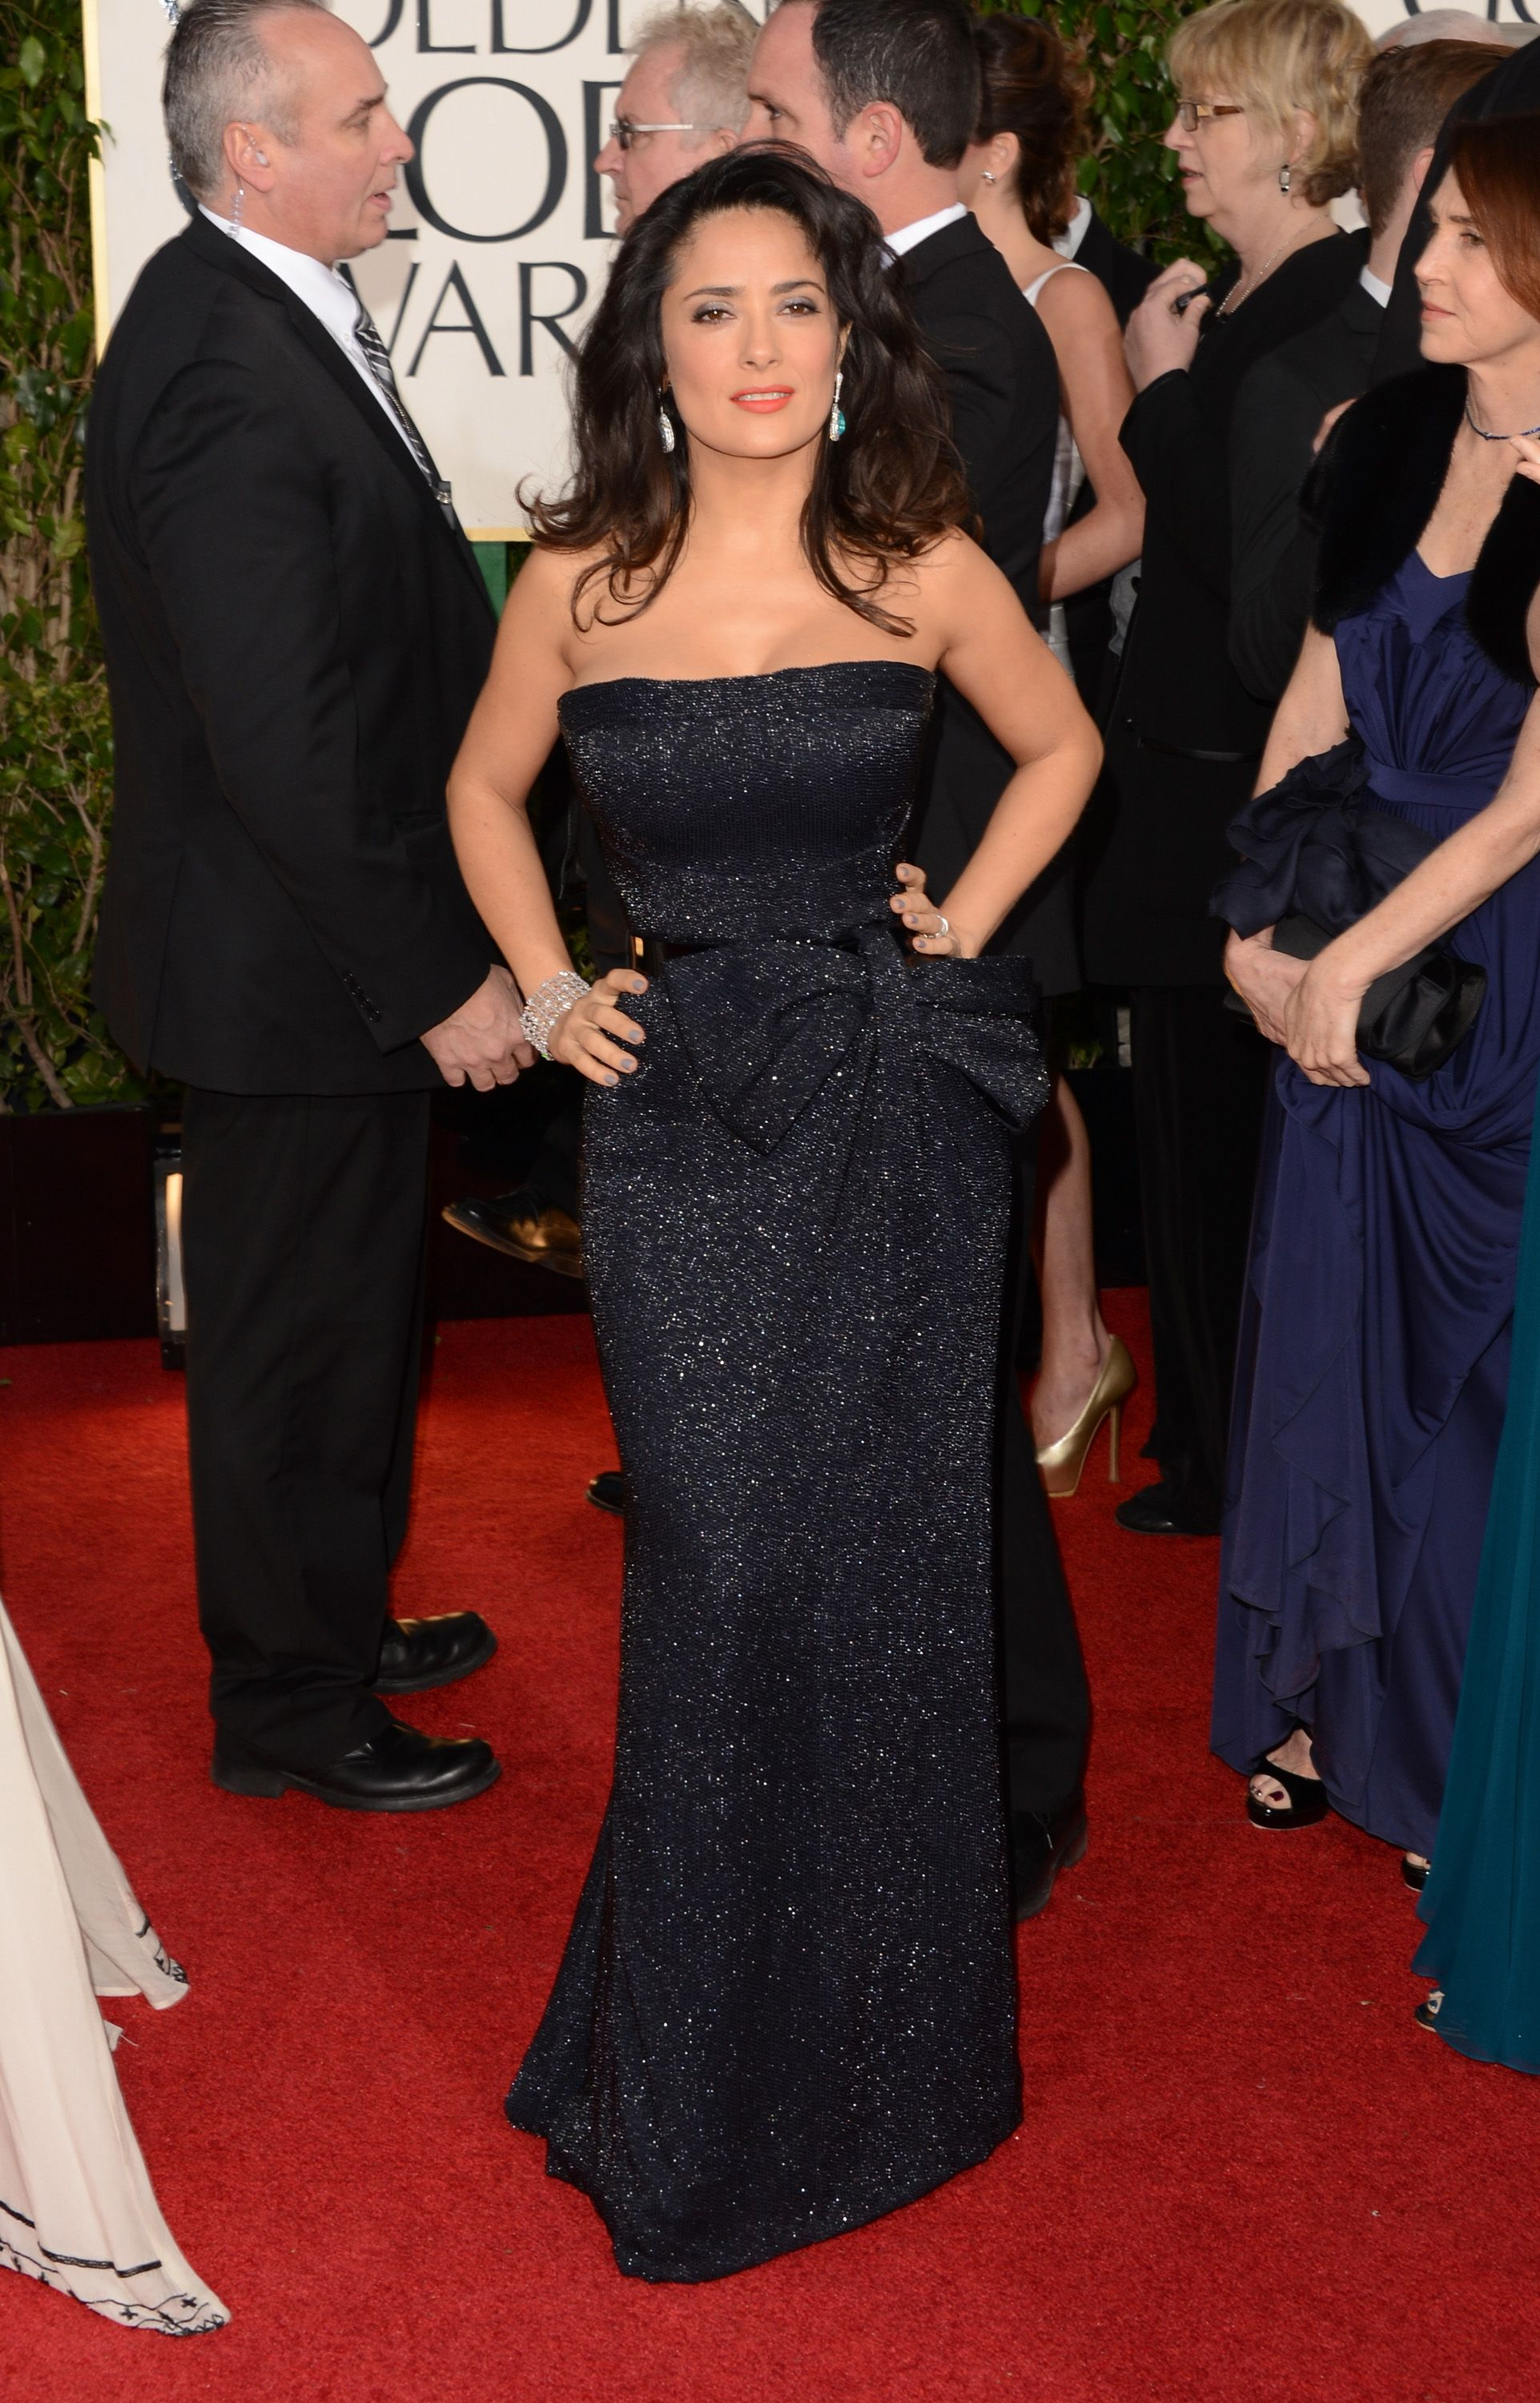 Salma Hayek at the 70th Annual Golden Globe Awards in Beverly Hills 13.1.2013_03